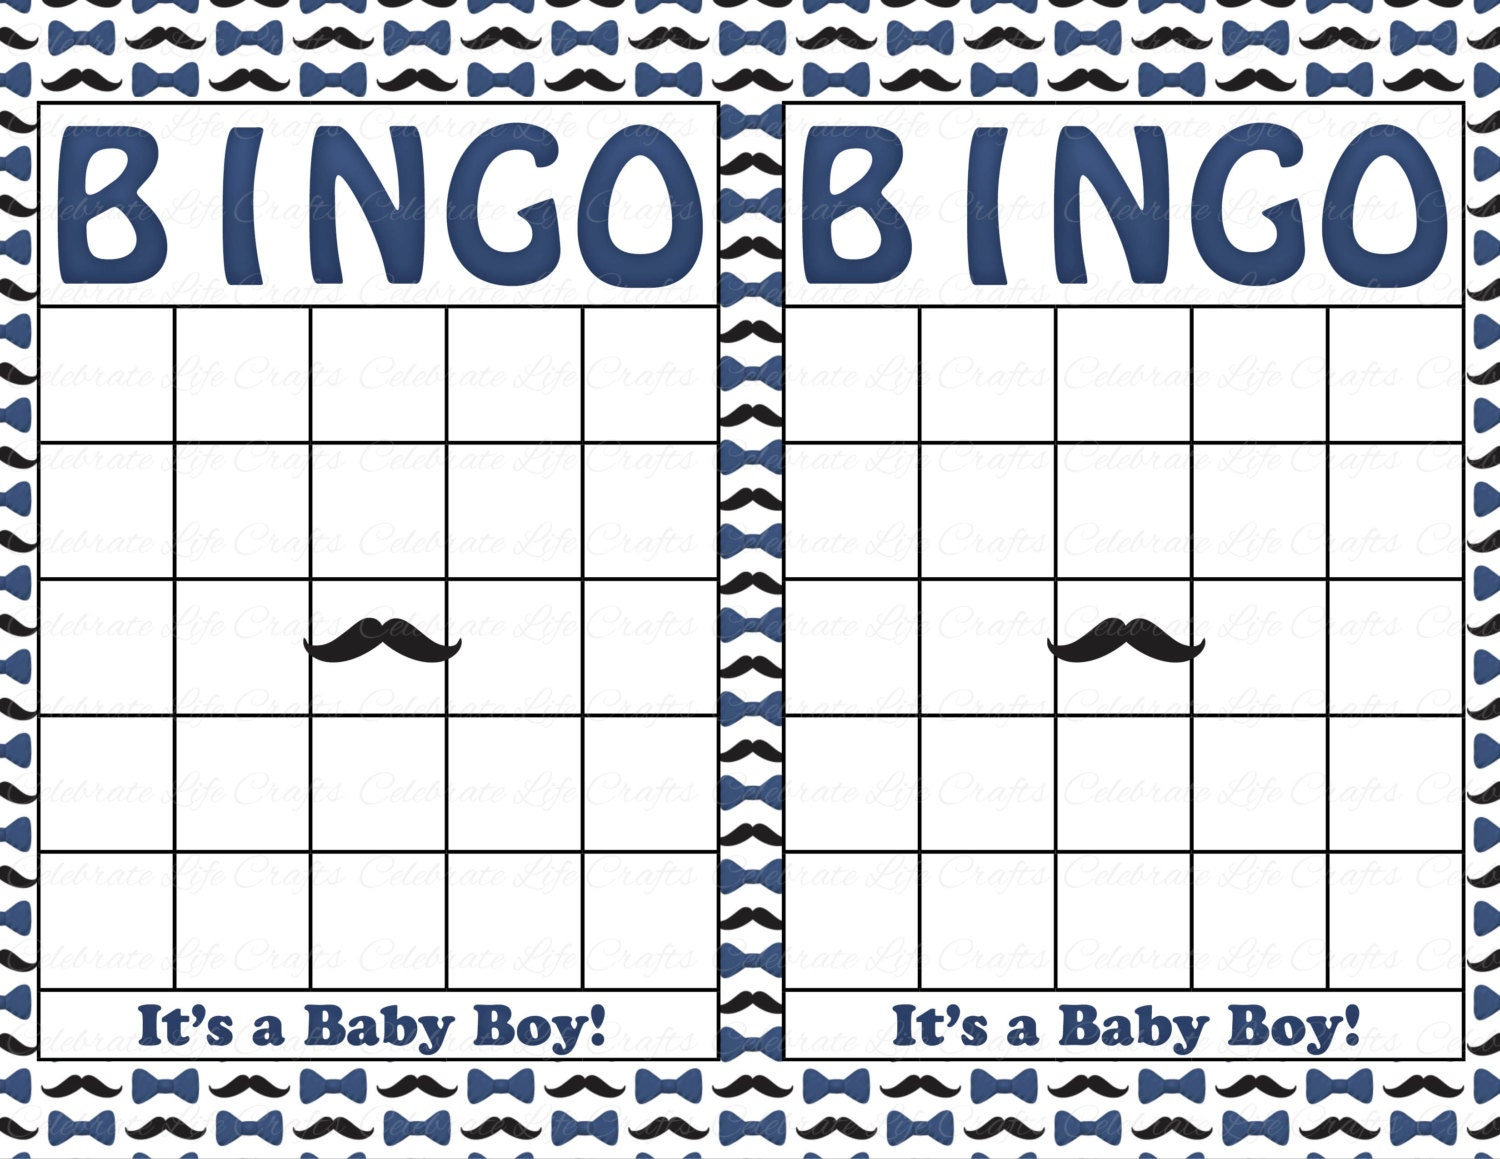 Blank baby shower bingo cards mustache theme printable zoom solutioingenieria Gallery